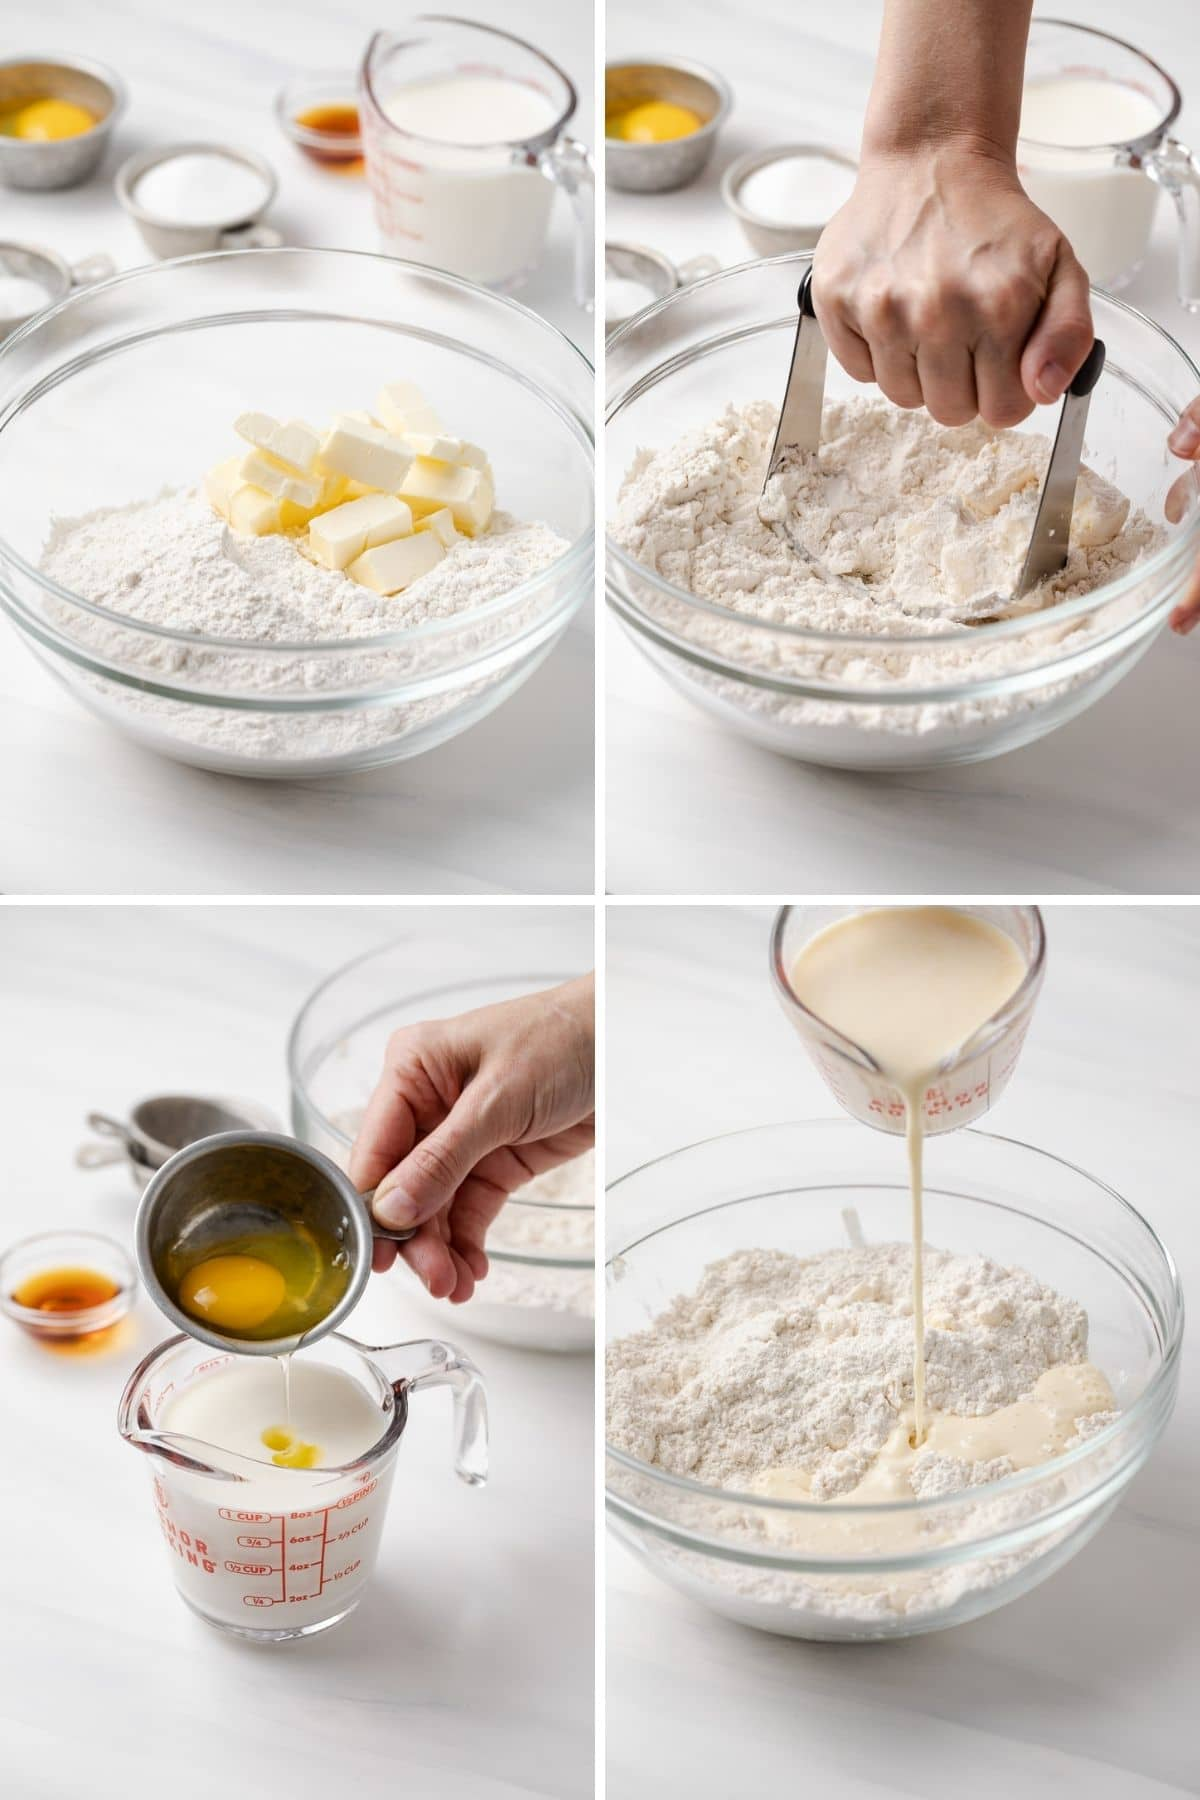 chopped butter in bowl with flour, hand blending butter into flour with pastry blender, egg being poured into cup of buttermilk, and buttermilk mixture being drizzled over flour in glass bowl